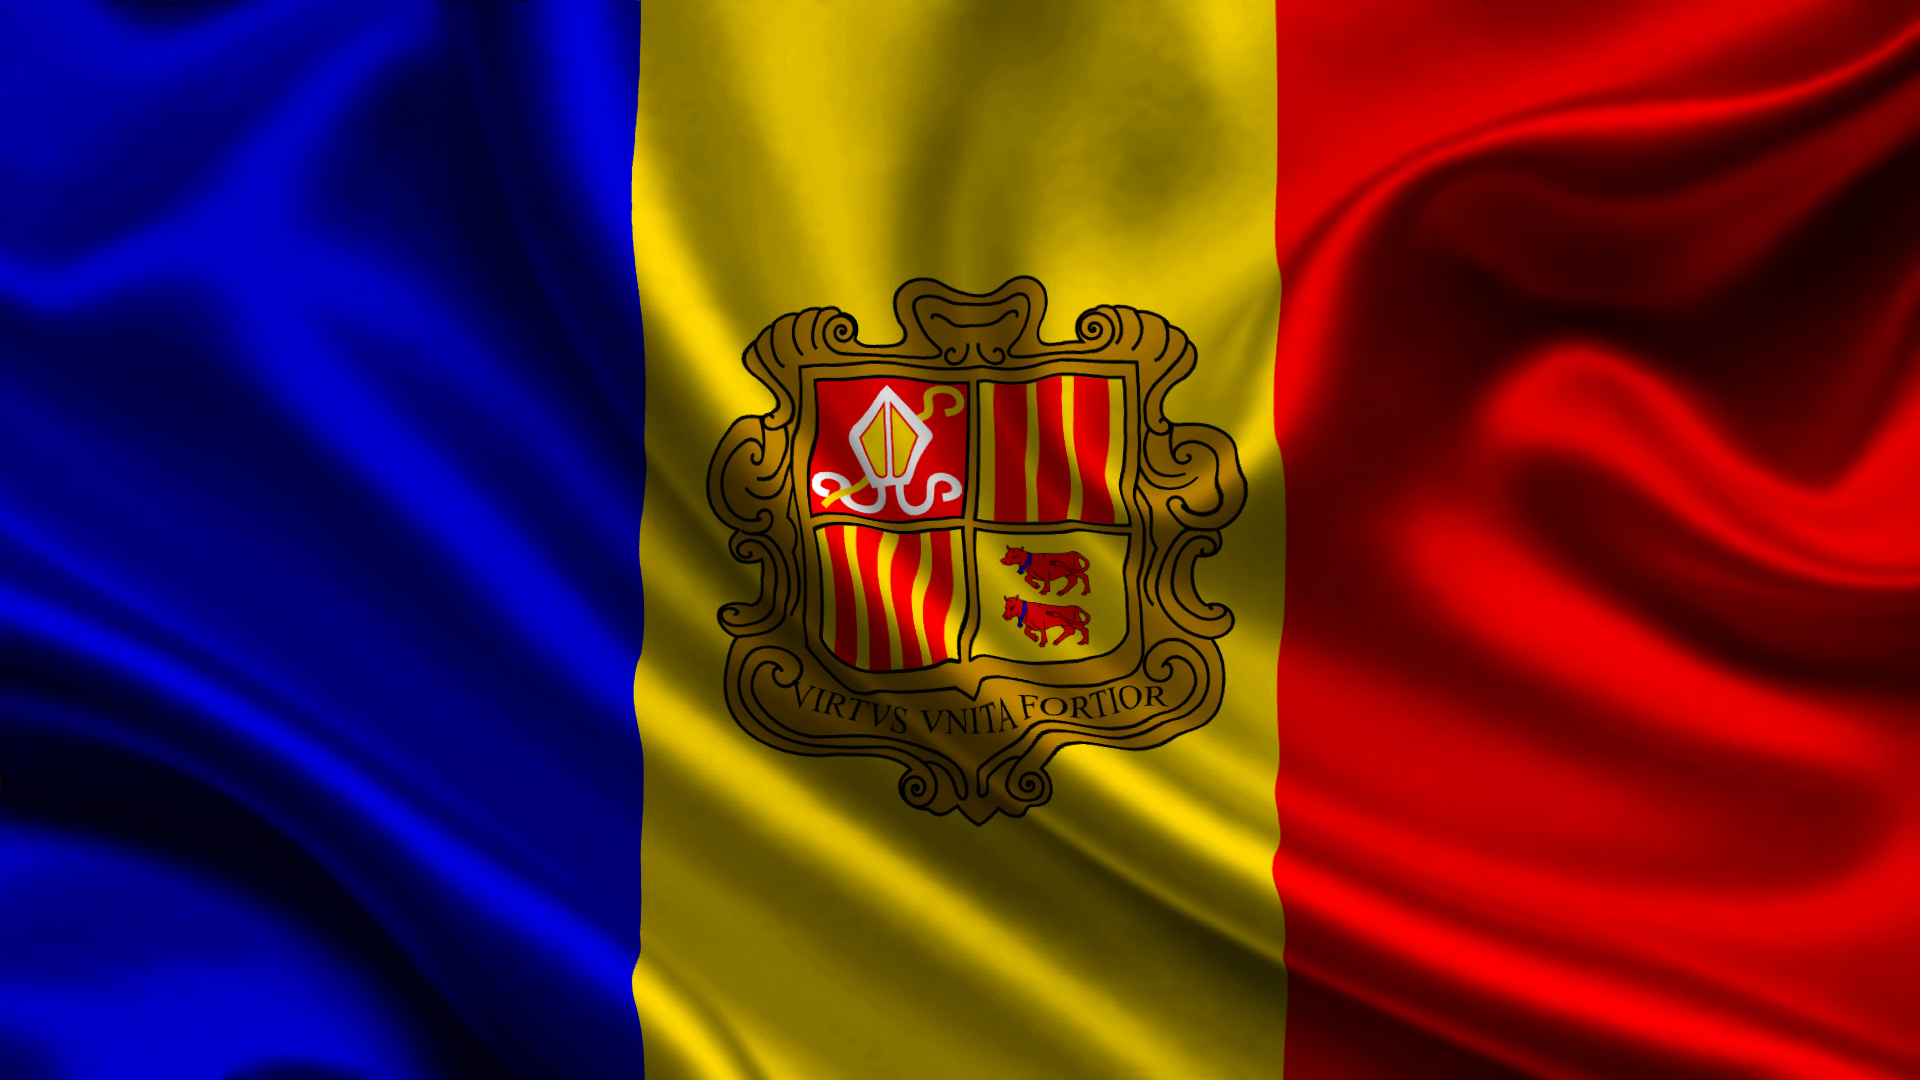 Free Andorra Flag Images: AI, EPS, GIF, , PDF, PNG, and SVG